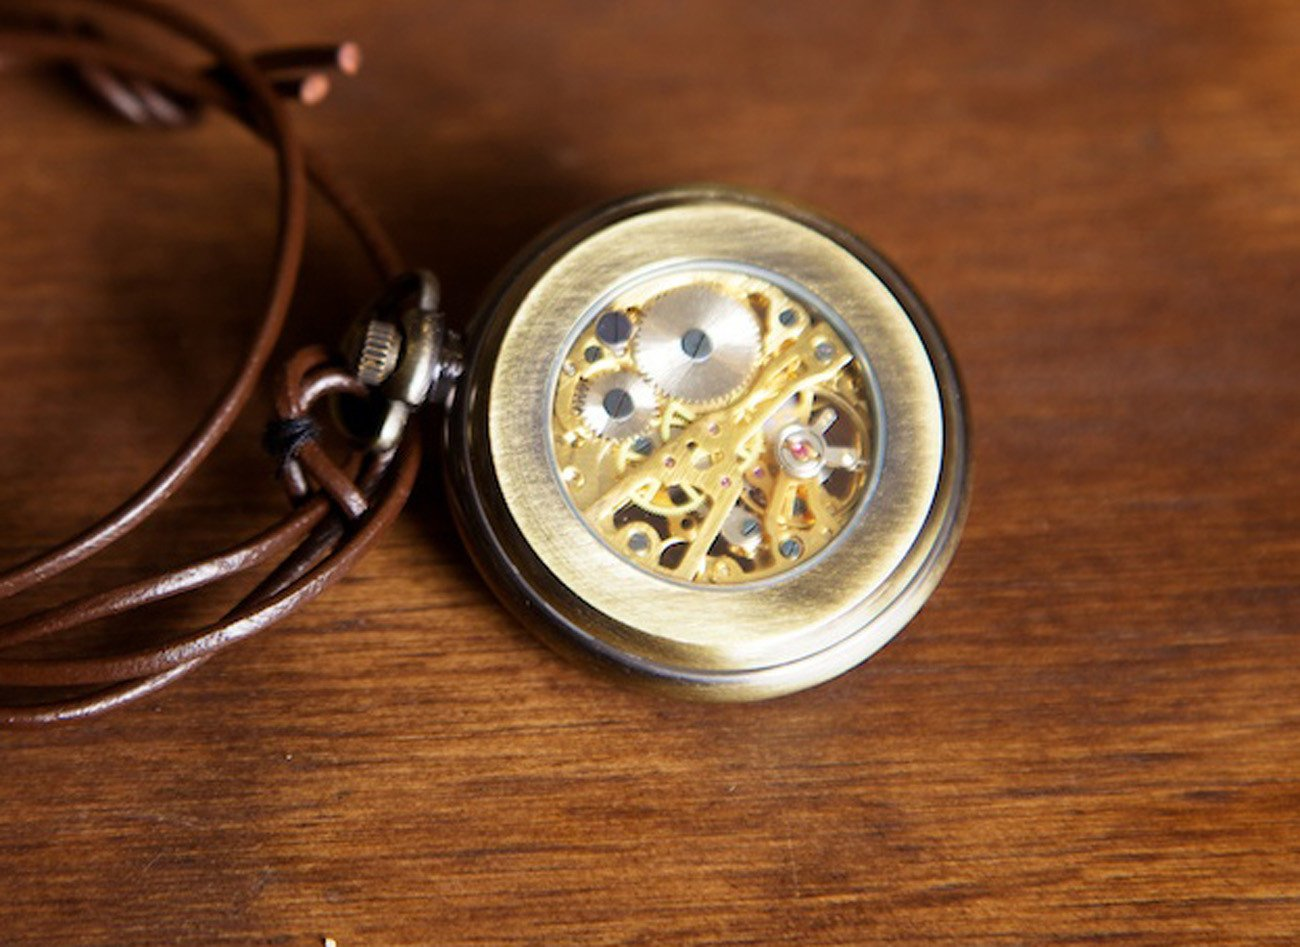 Brushed Brass Open Face Skeleton Watch